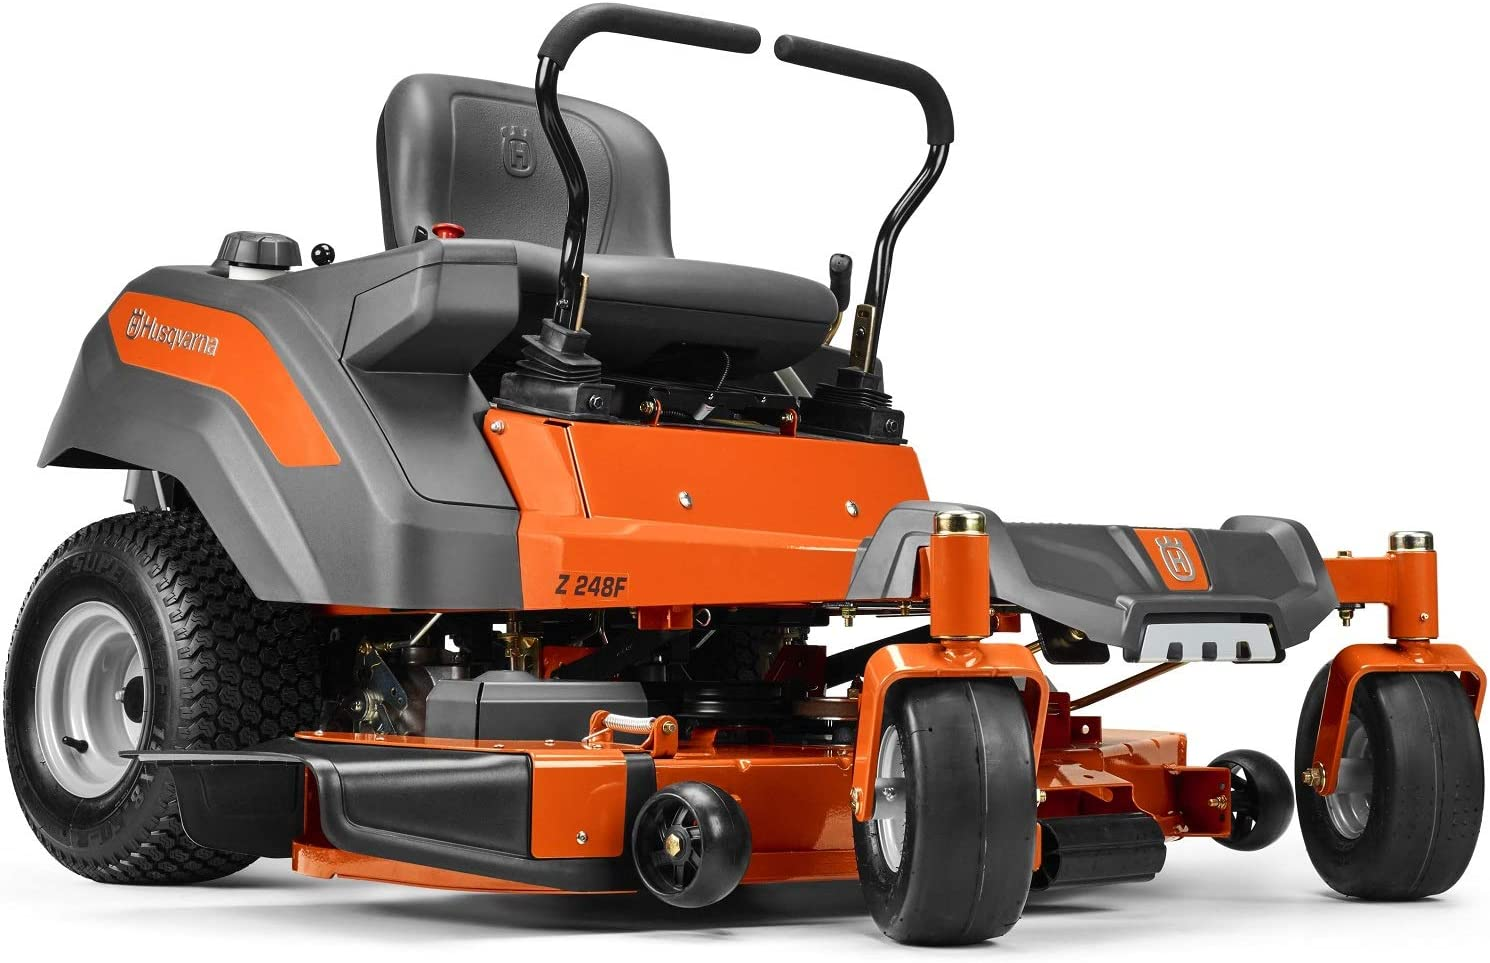 Husqvarna Z248F 48-Inch Zero-Turn Riding Mower